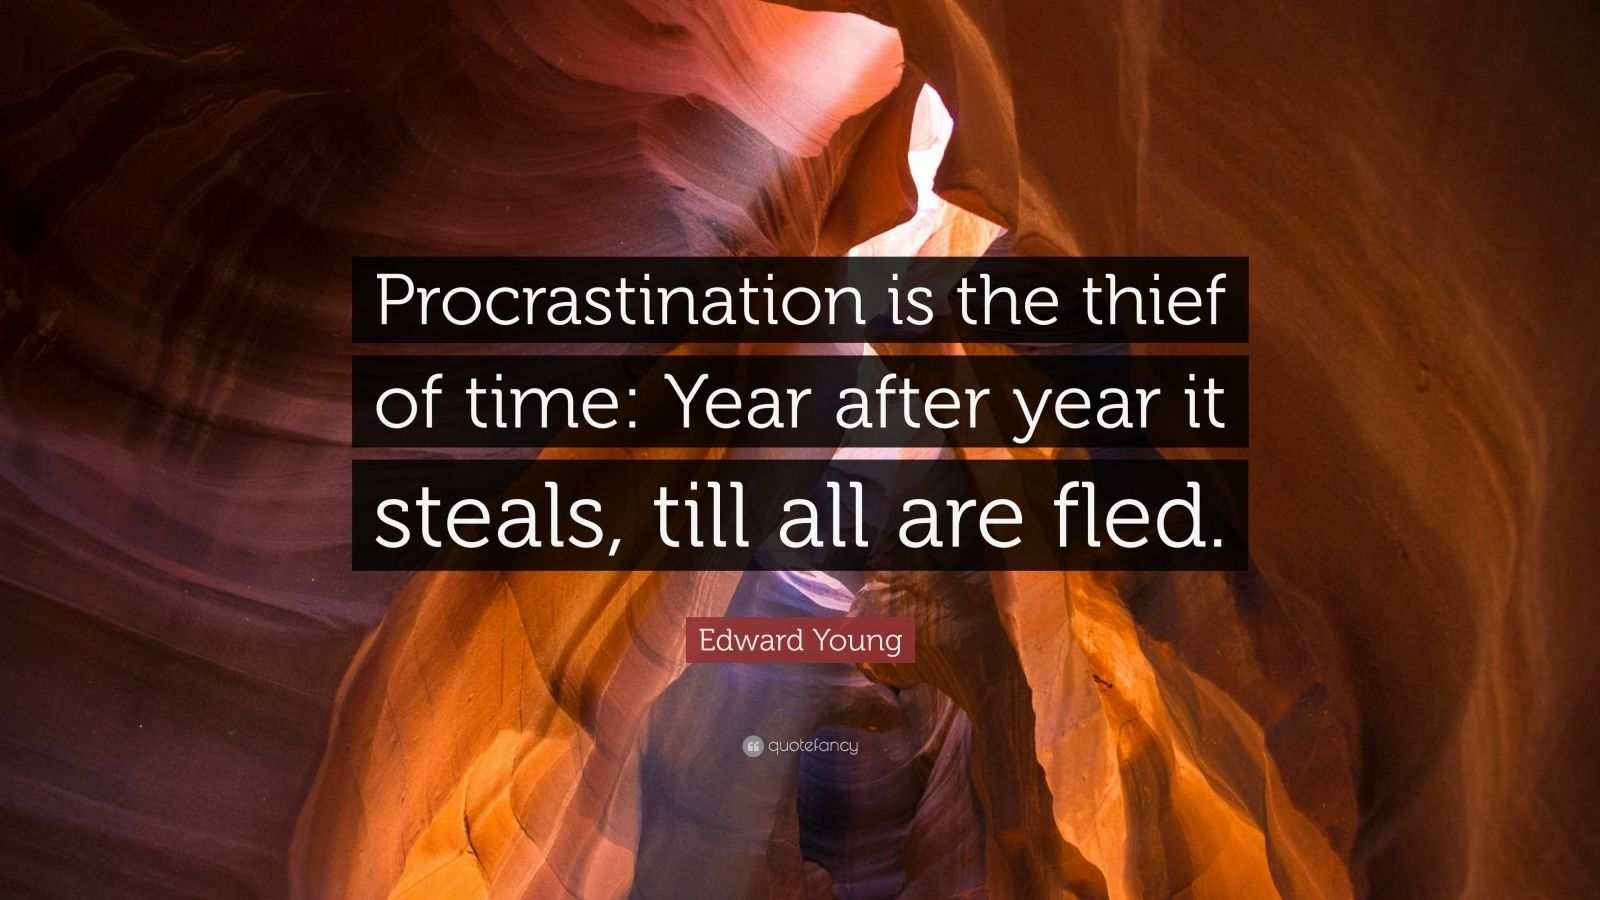 essays on procrastination is the thief of time The Thief of Time: Philosophical Essays on Procrastination